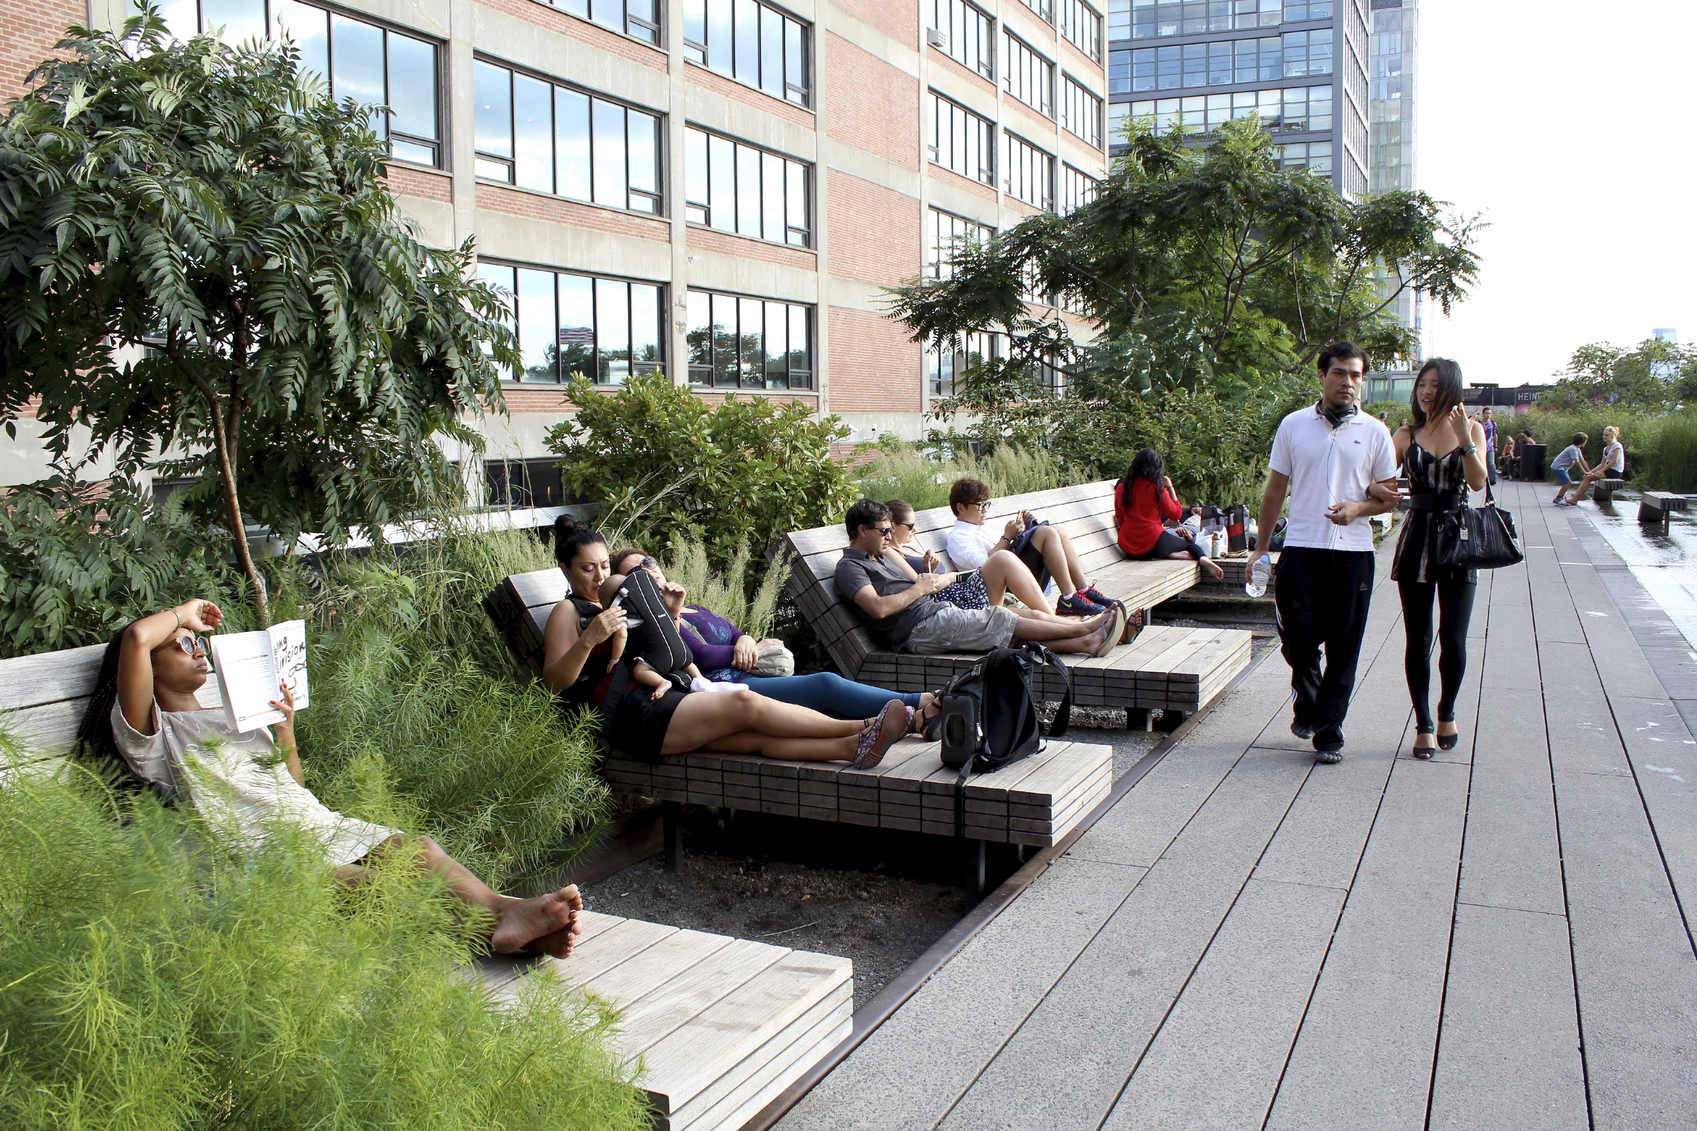 Explore The High Line Park This Summer image